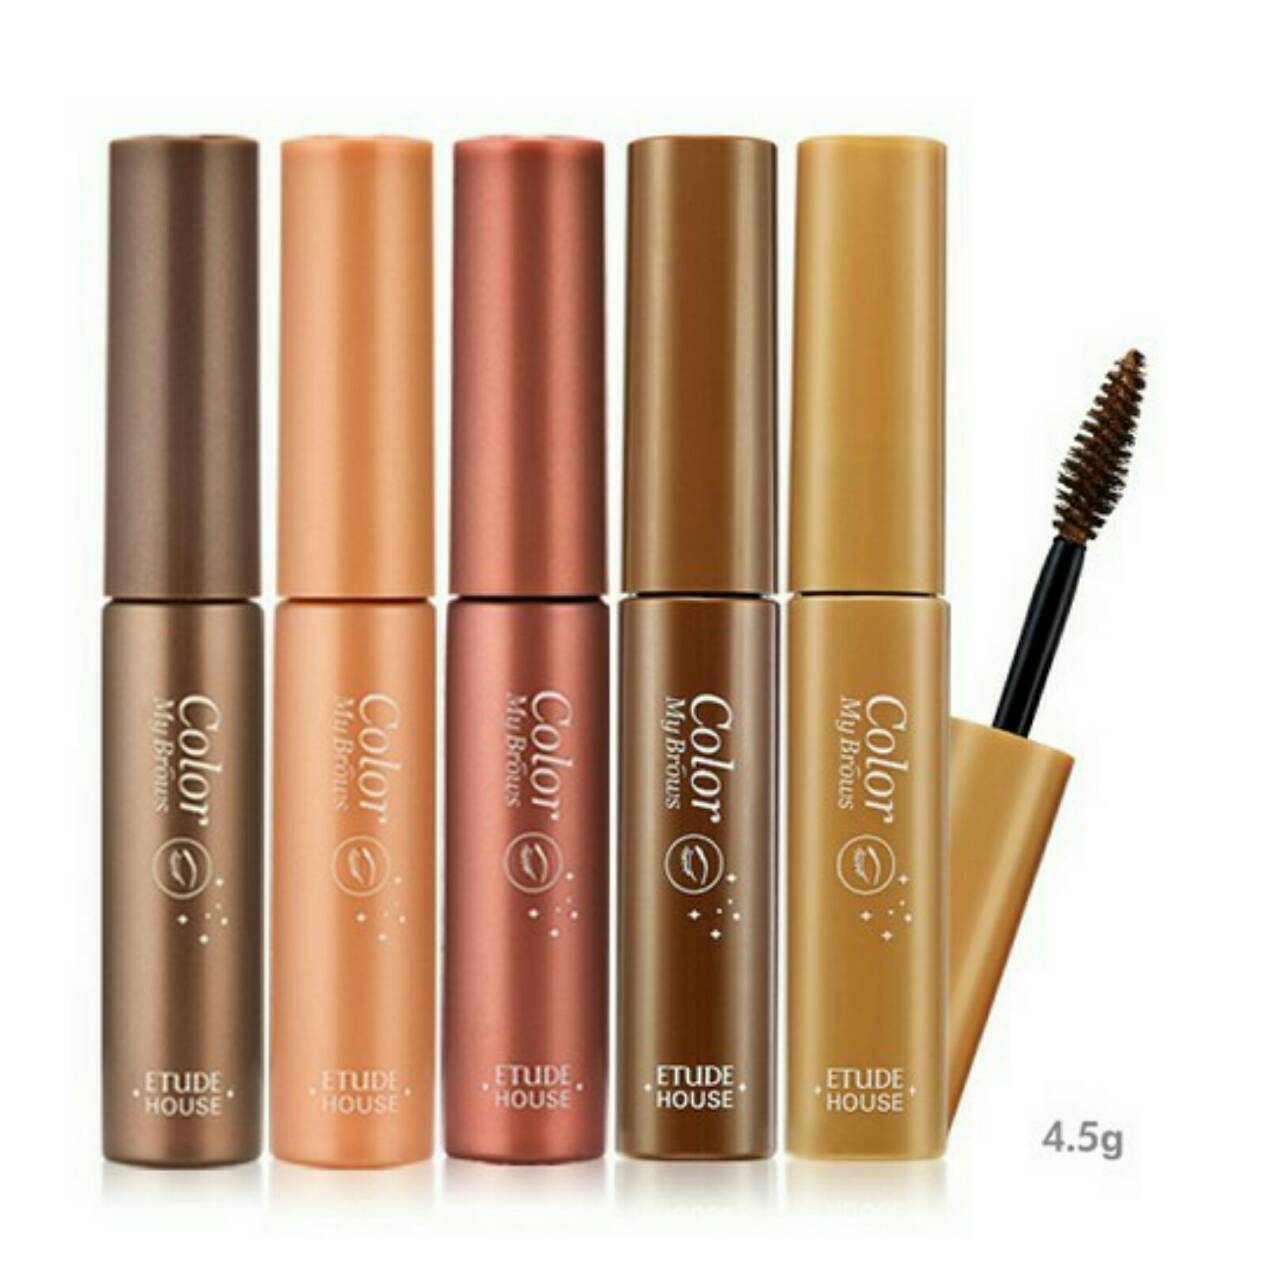 Etude House Color Me Brows